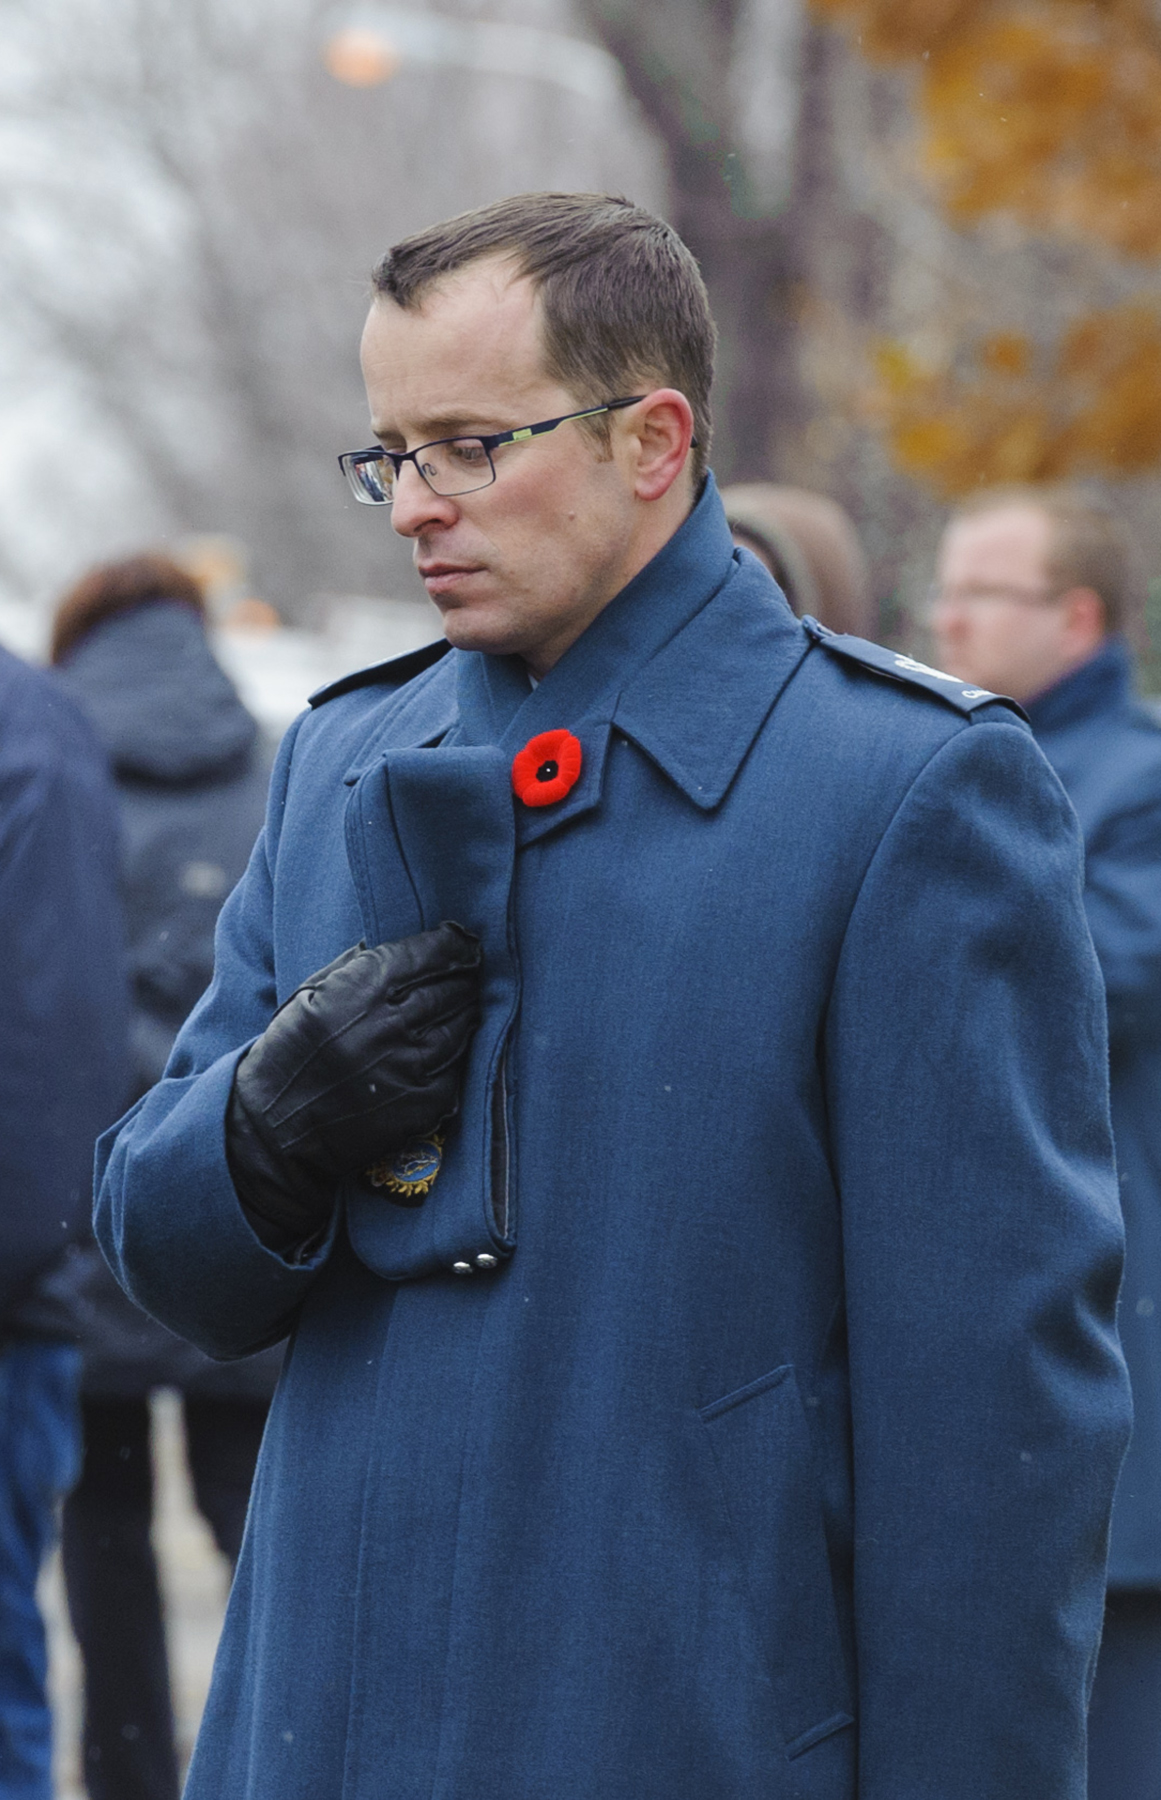 A uniformed man with a poppy on his blue topcoat bows his head and places his hand over his heart.